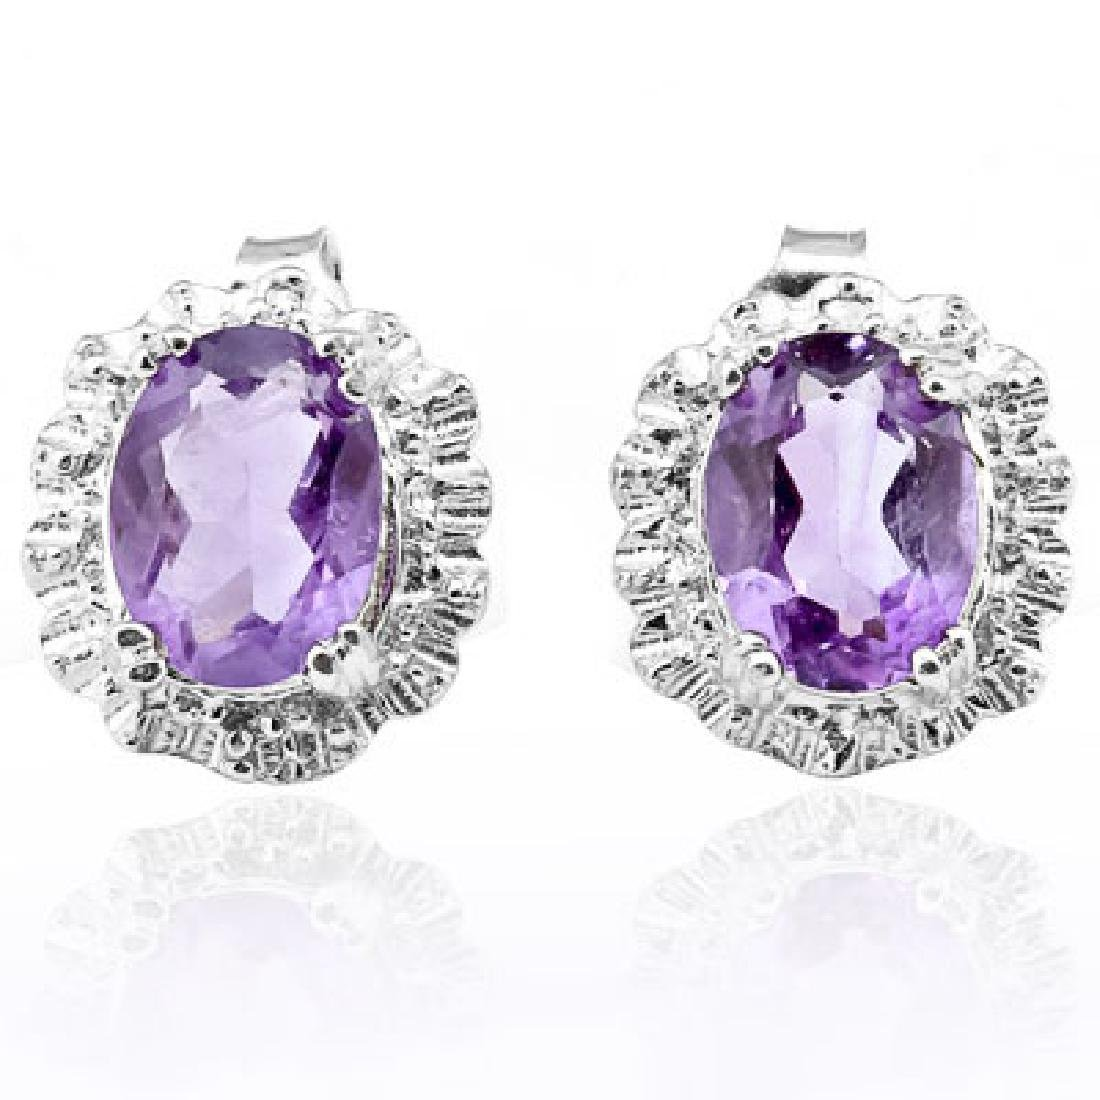 2.263 CARAT AMETHYST & GENUINE DIAMOND PLATINUM OVER 0.